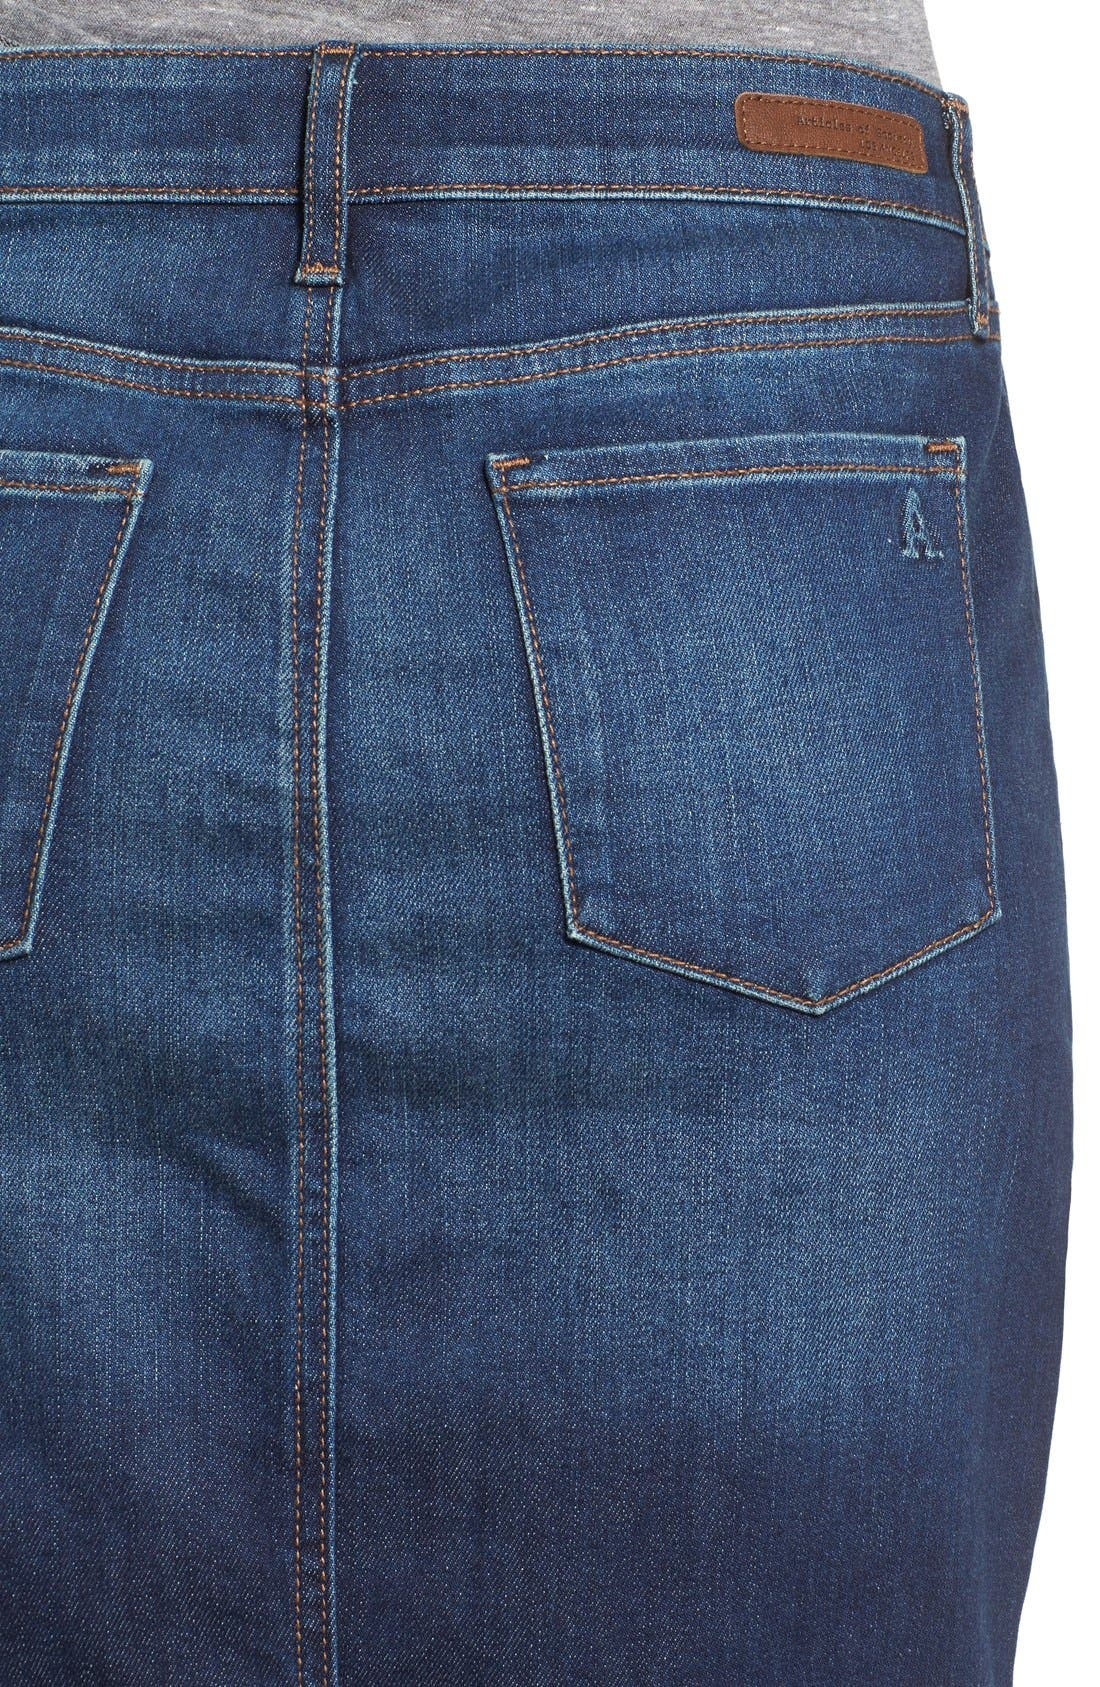 Alternate Image 4  - Articles of Society 'Penny' Denim Pencil Skirt (Del Ray)